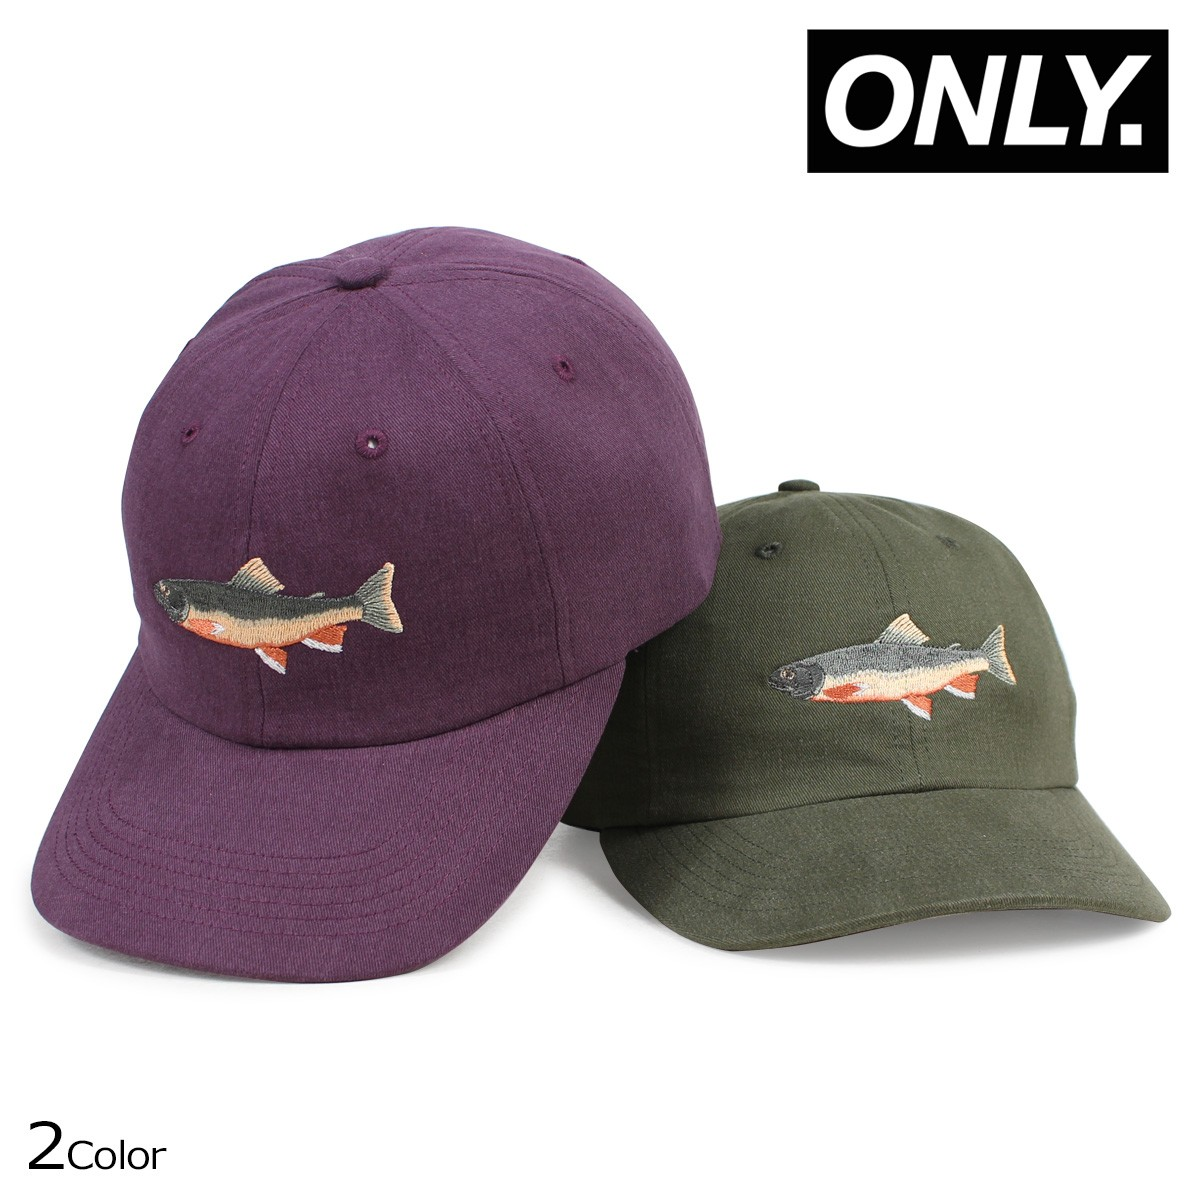 ONLY NY オンリーニューヨーク キャップ 帽子 メンズ レディース BROOK TROUT POLO HAT オリーブ パープル [1/19 新入荷]